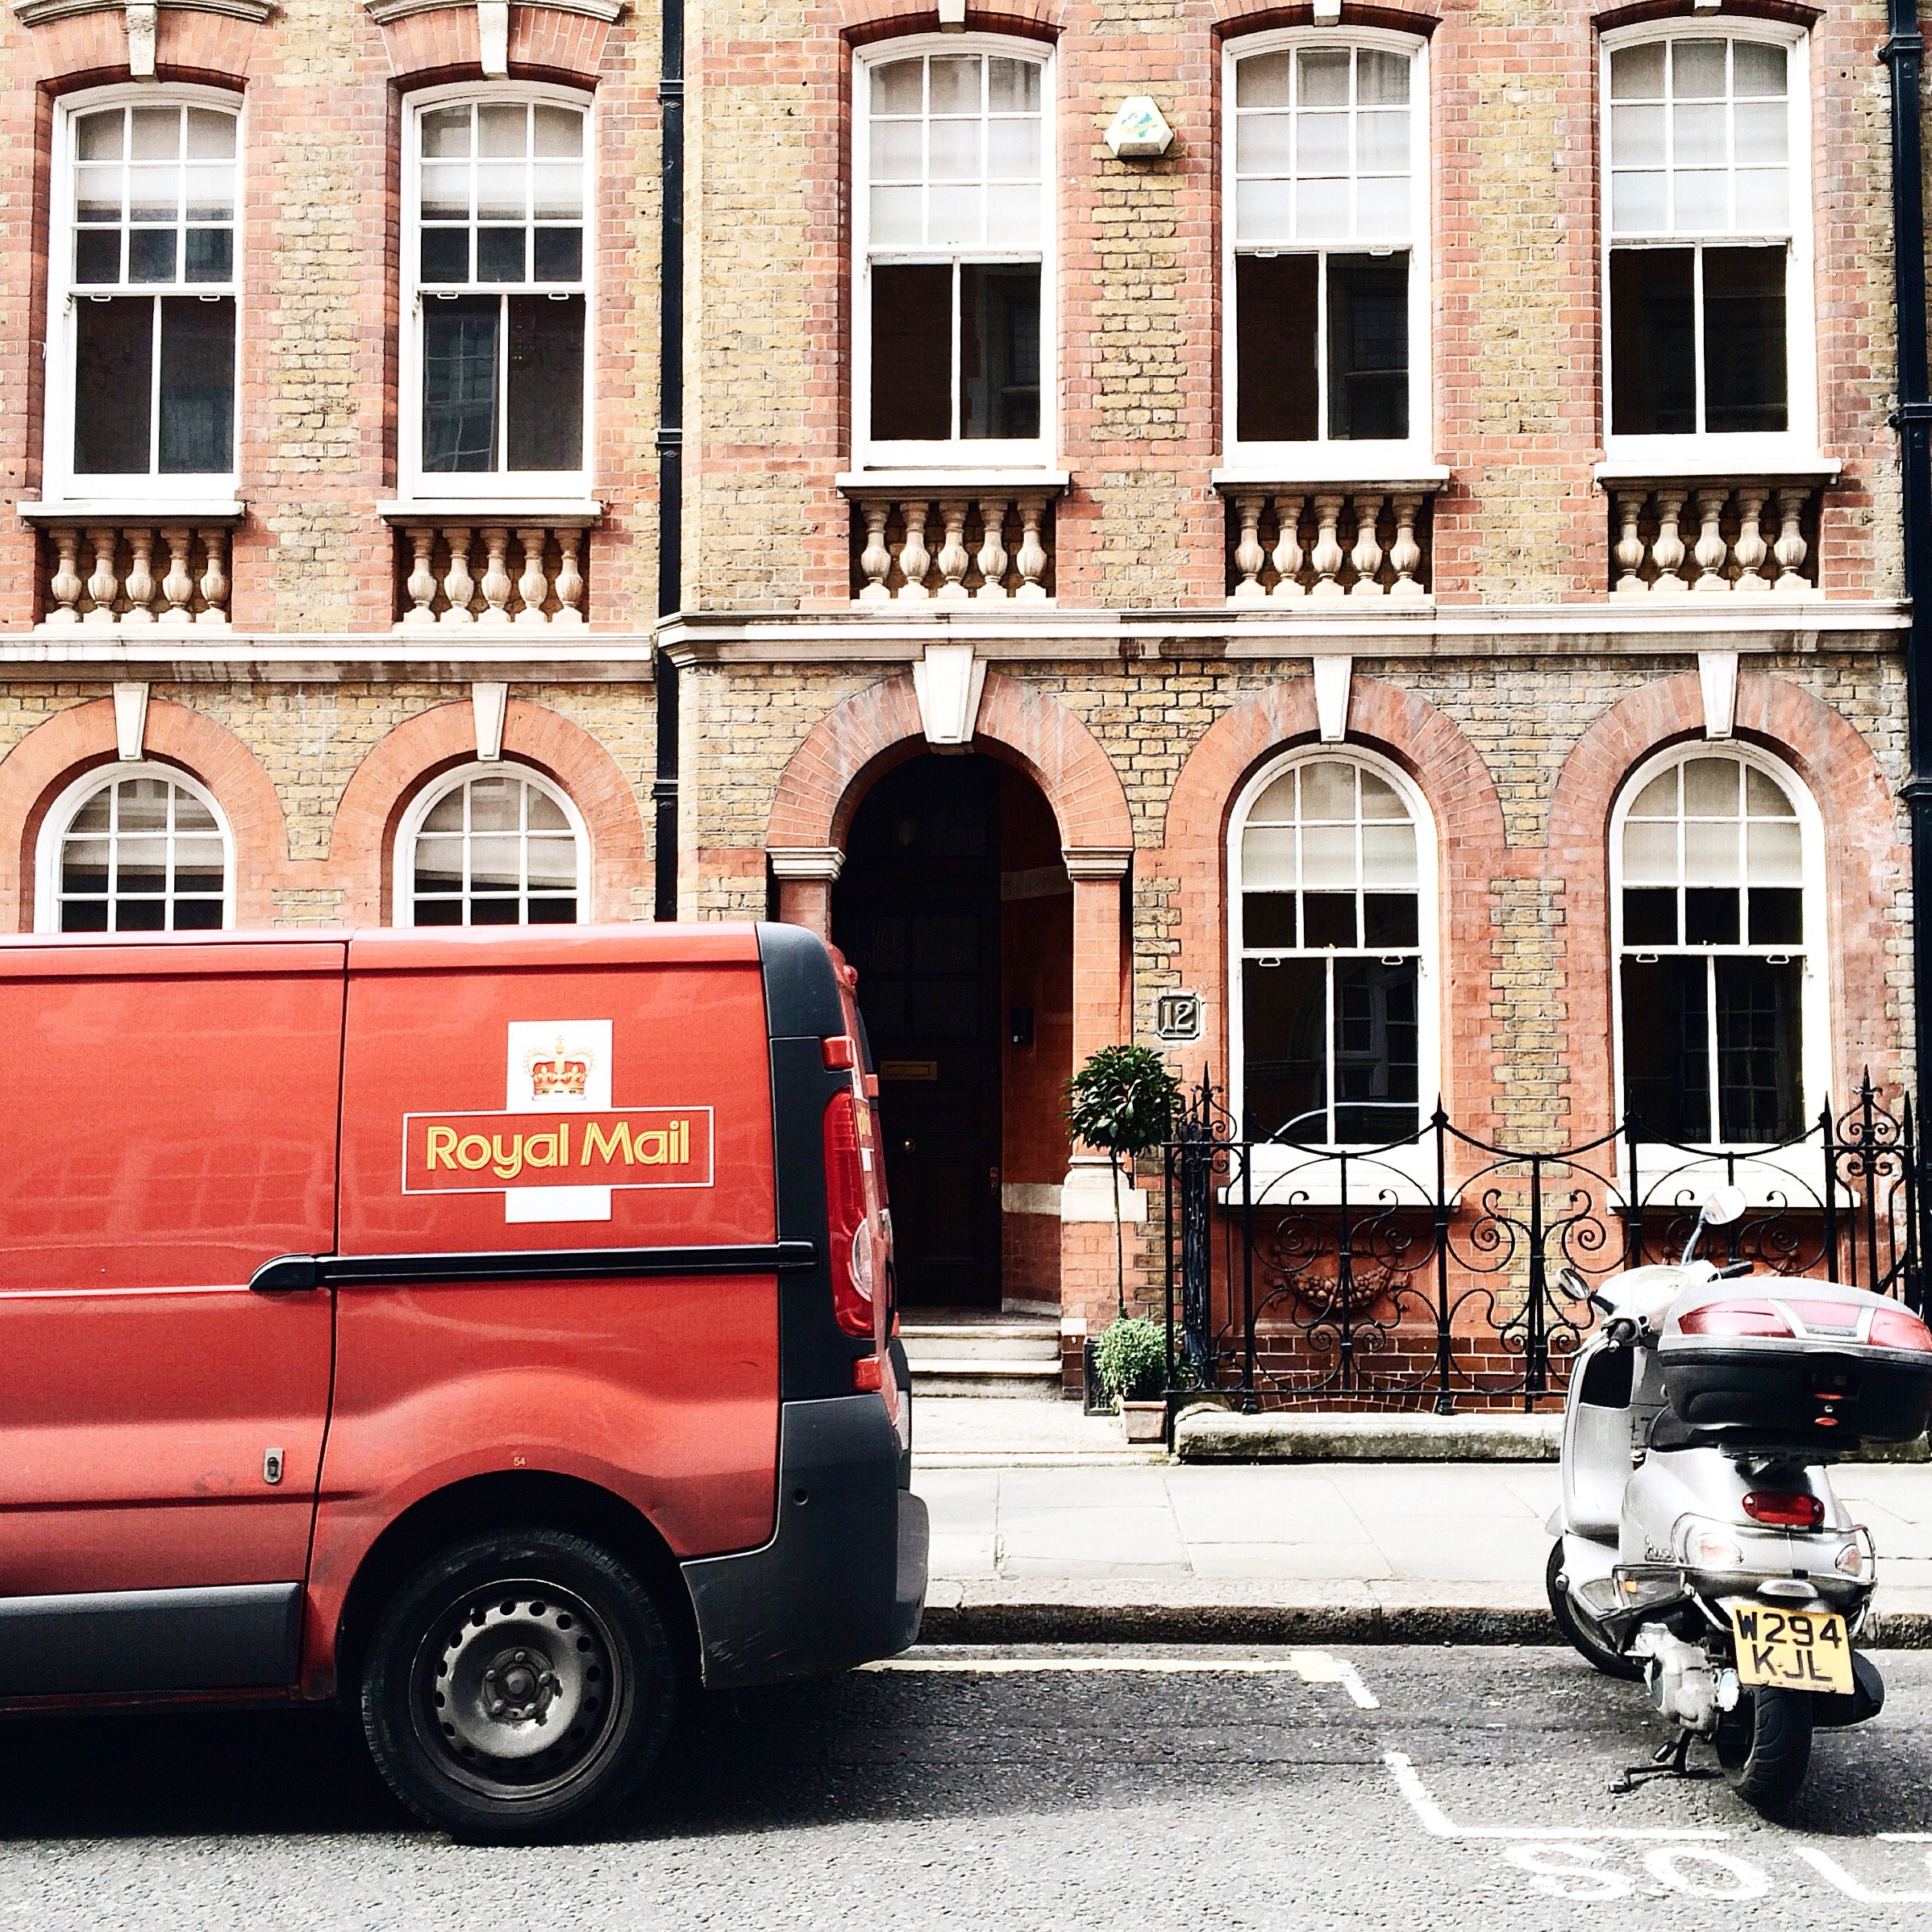 Red royal mail parked near brown brick building photo